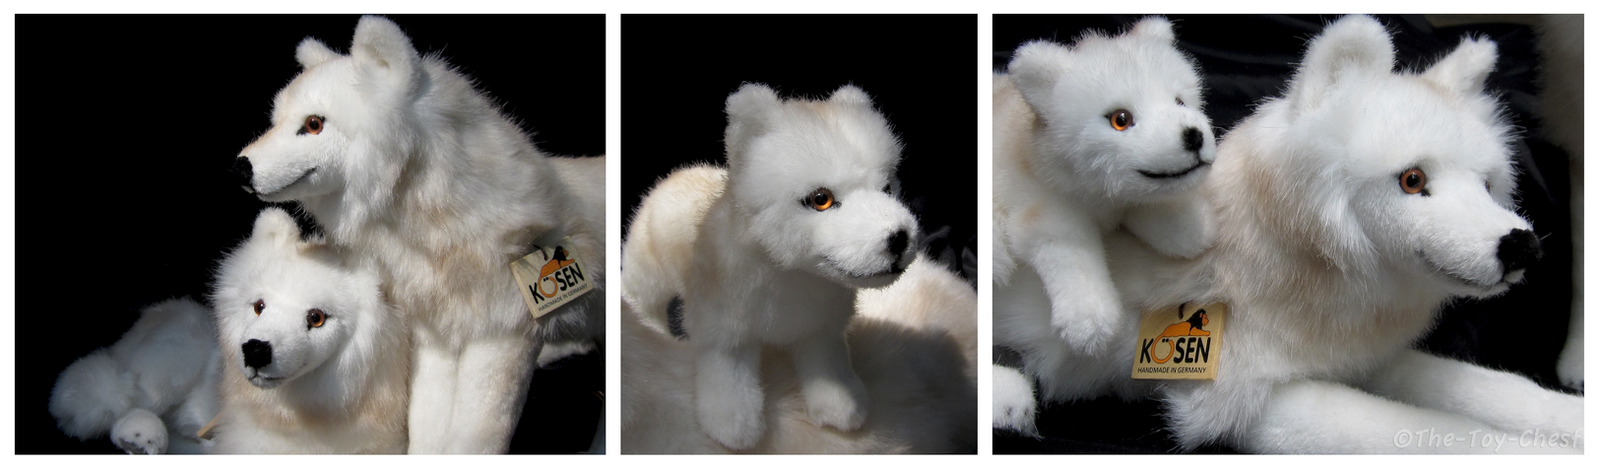 Wolf Family Toy : Kosen arctic wolf family i by the toy chest on deviantart